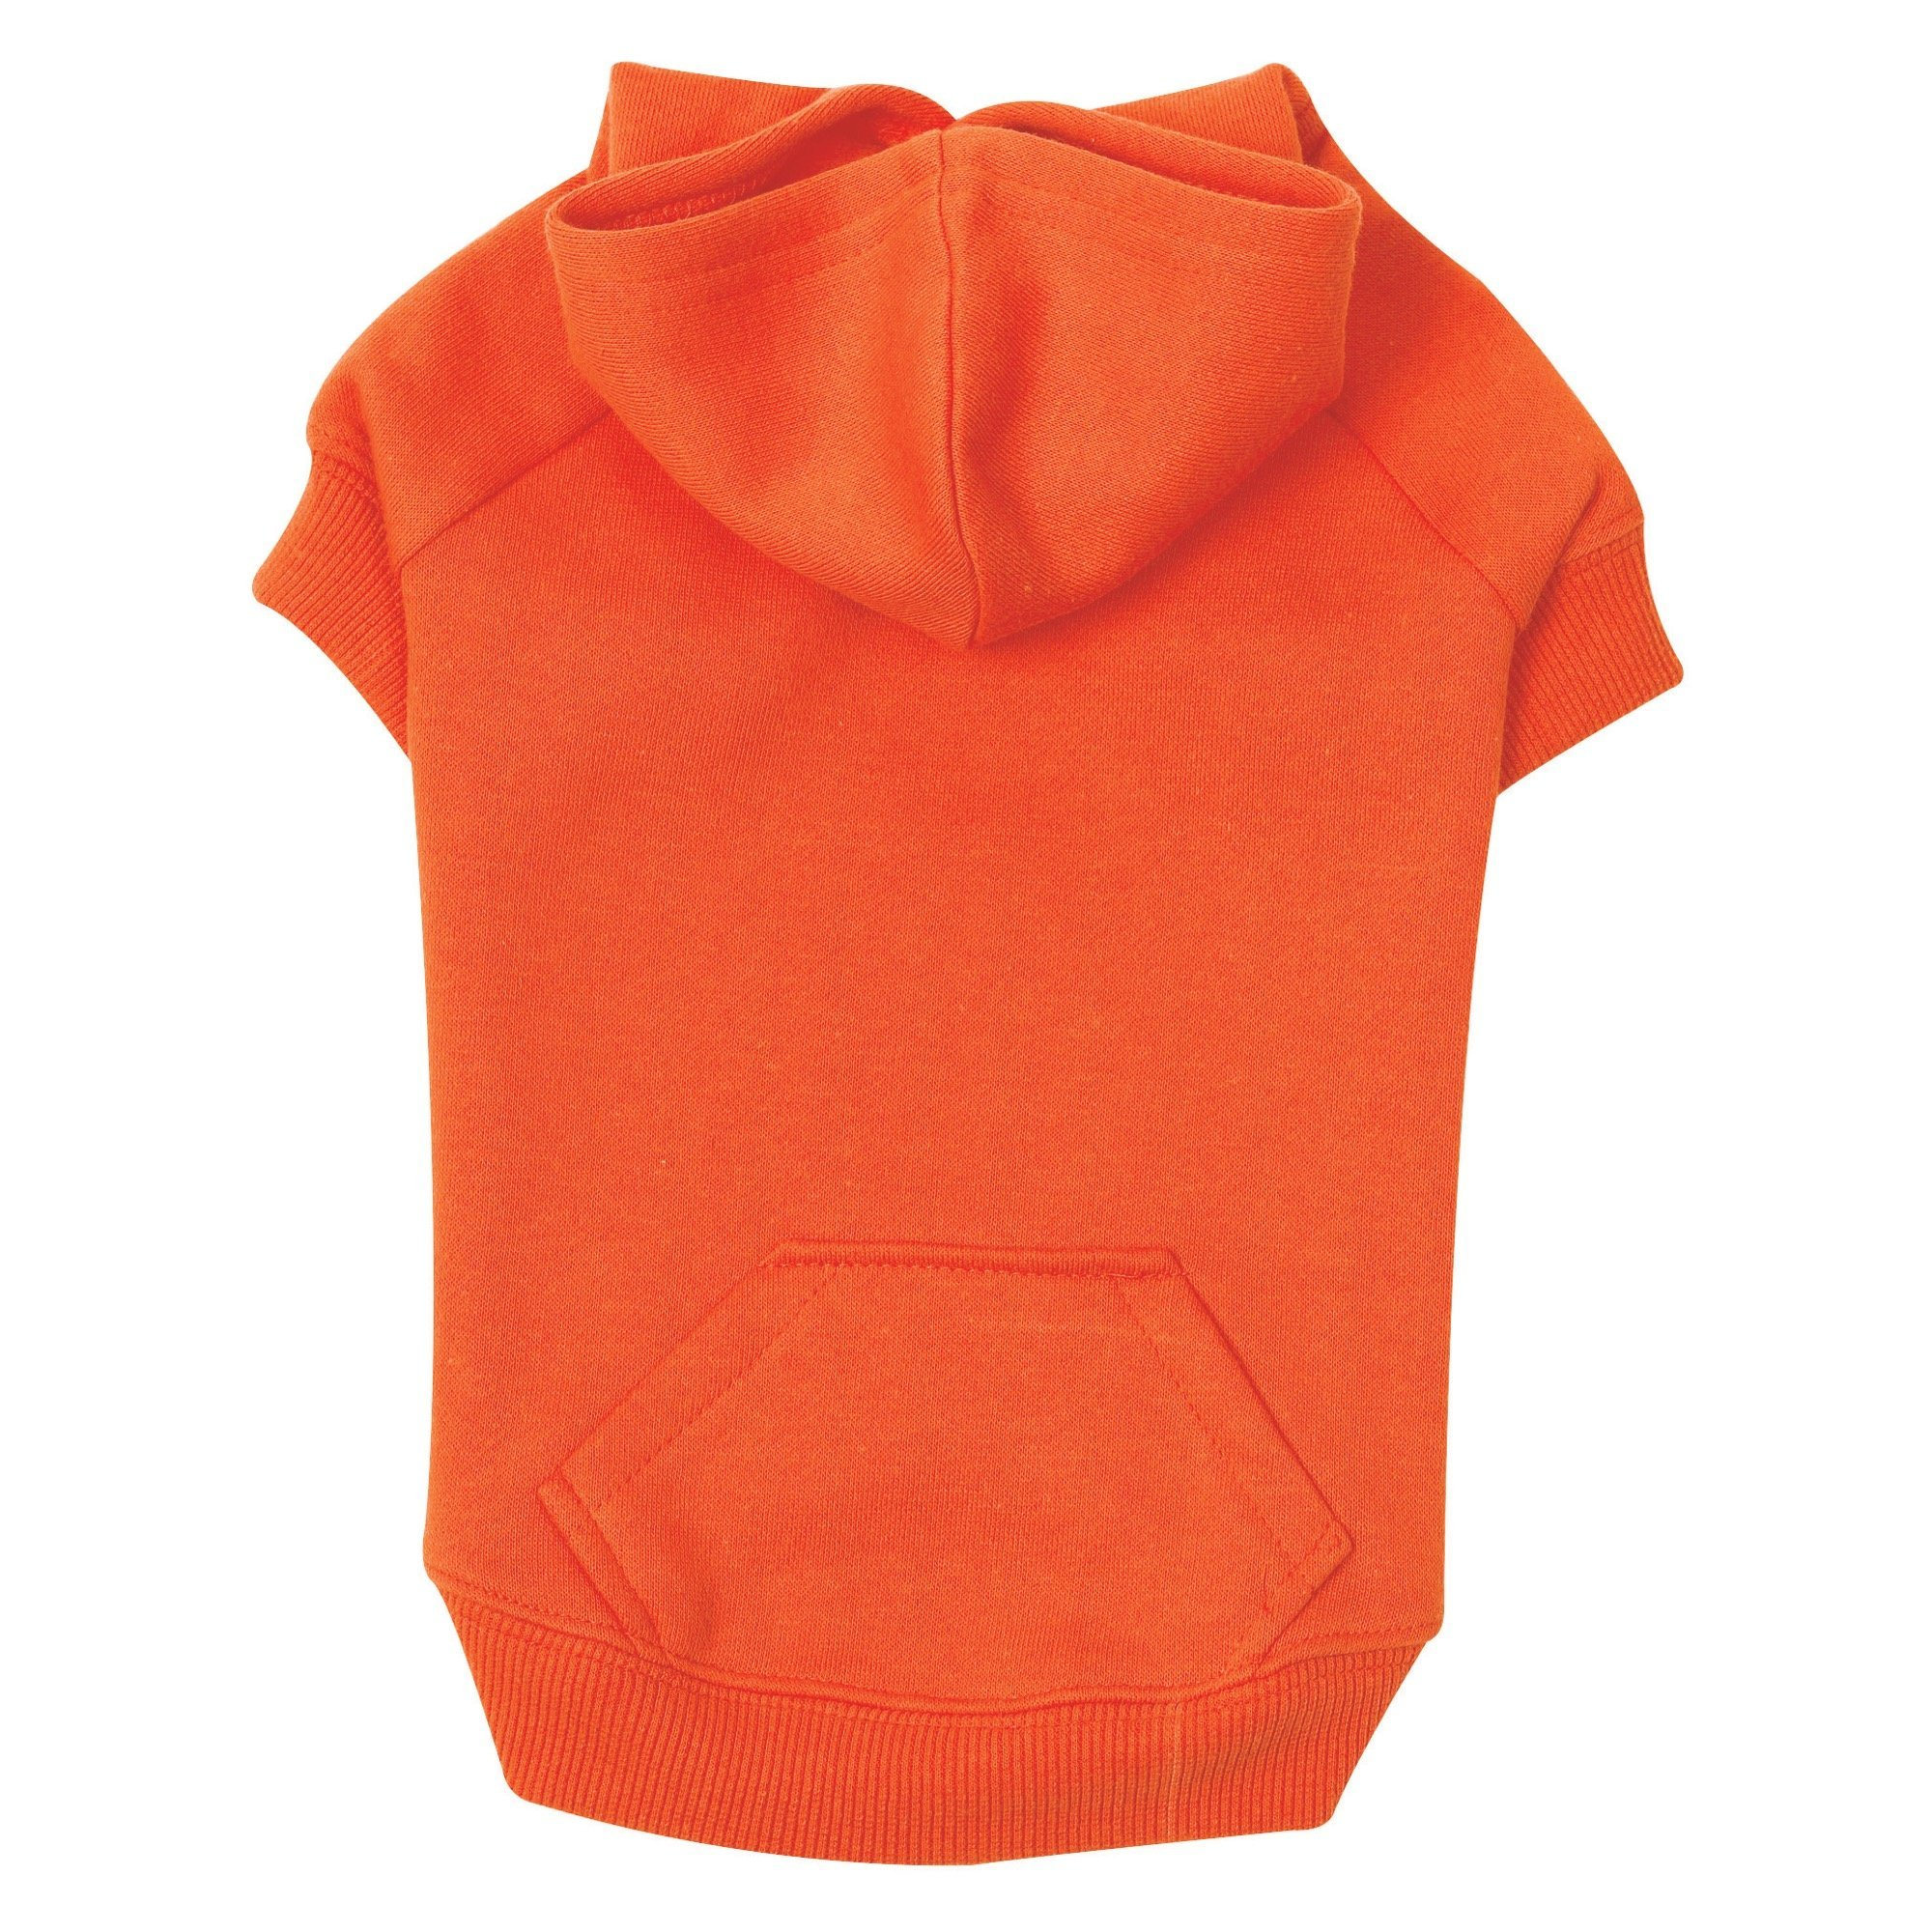 Zack & Zoey Basic Hoodie for Dogs, 24'' X-Large, Vibrant Orange by Zack & Zoey